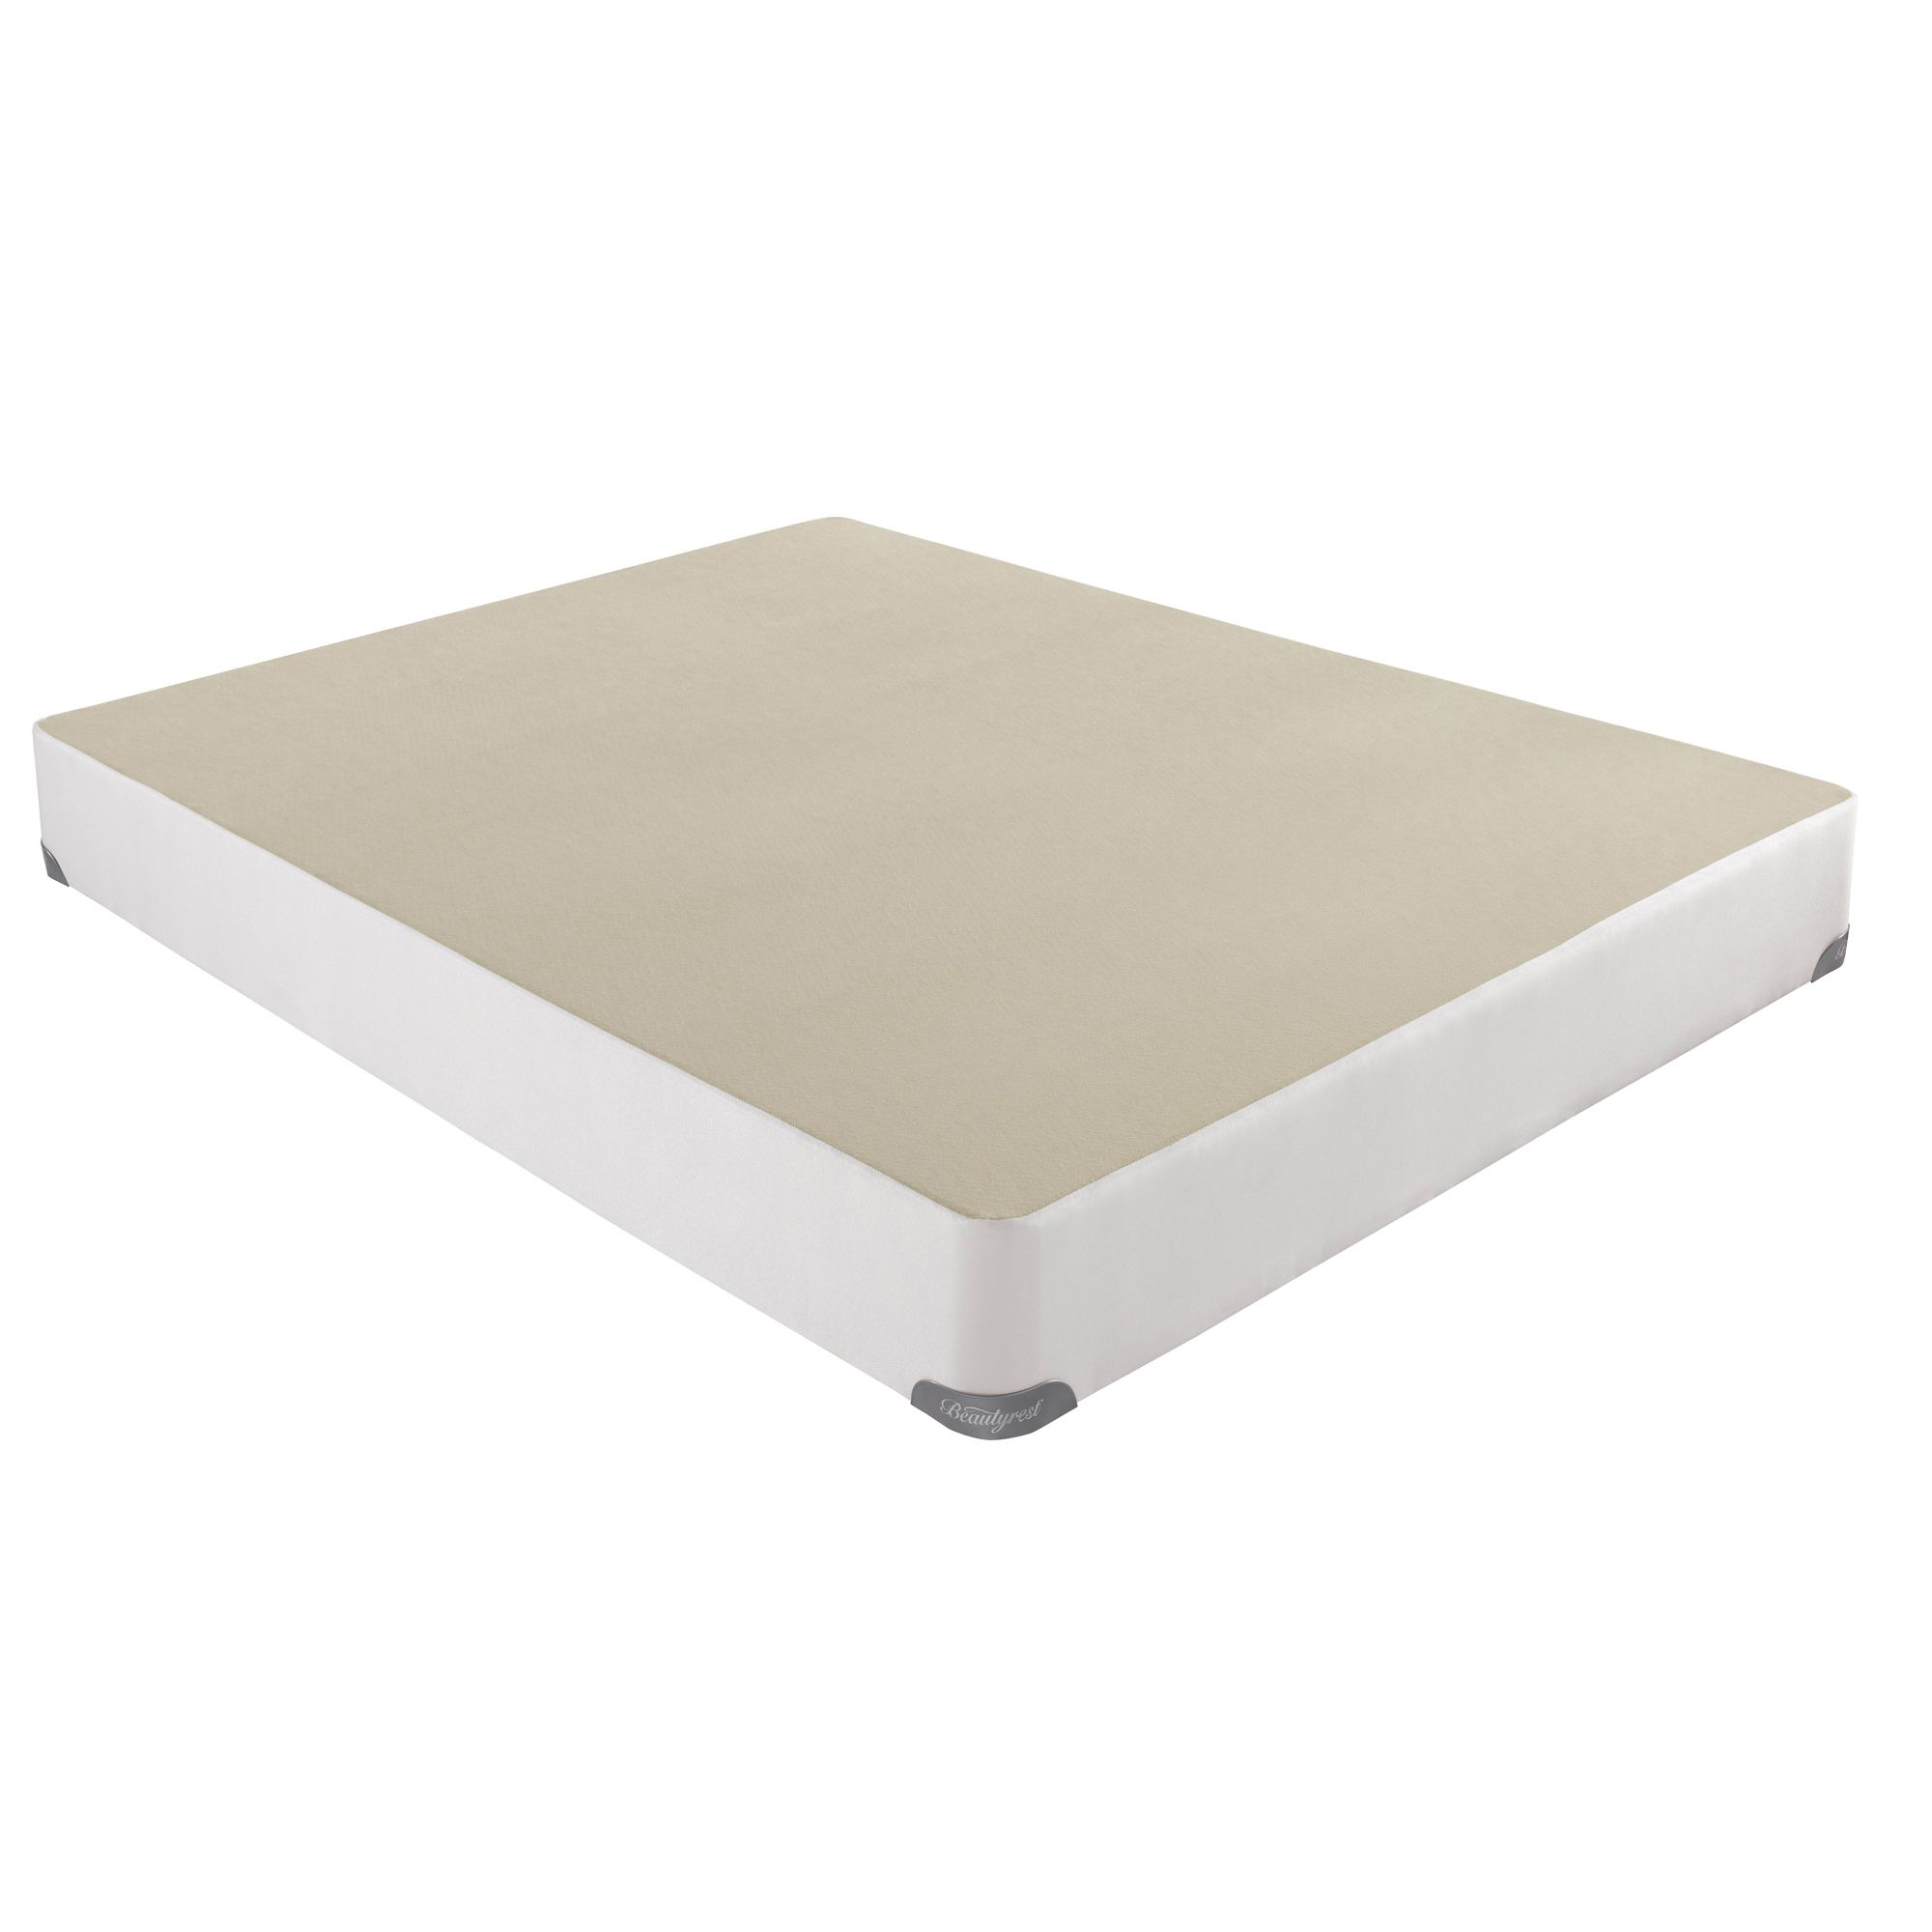 Triton-Boxspring-CA-King-Lo-Profile